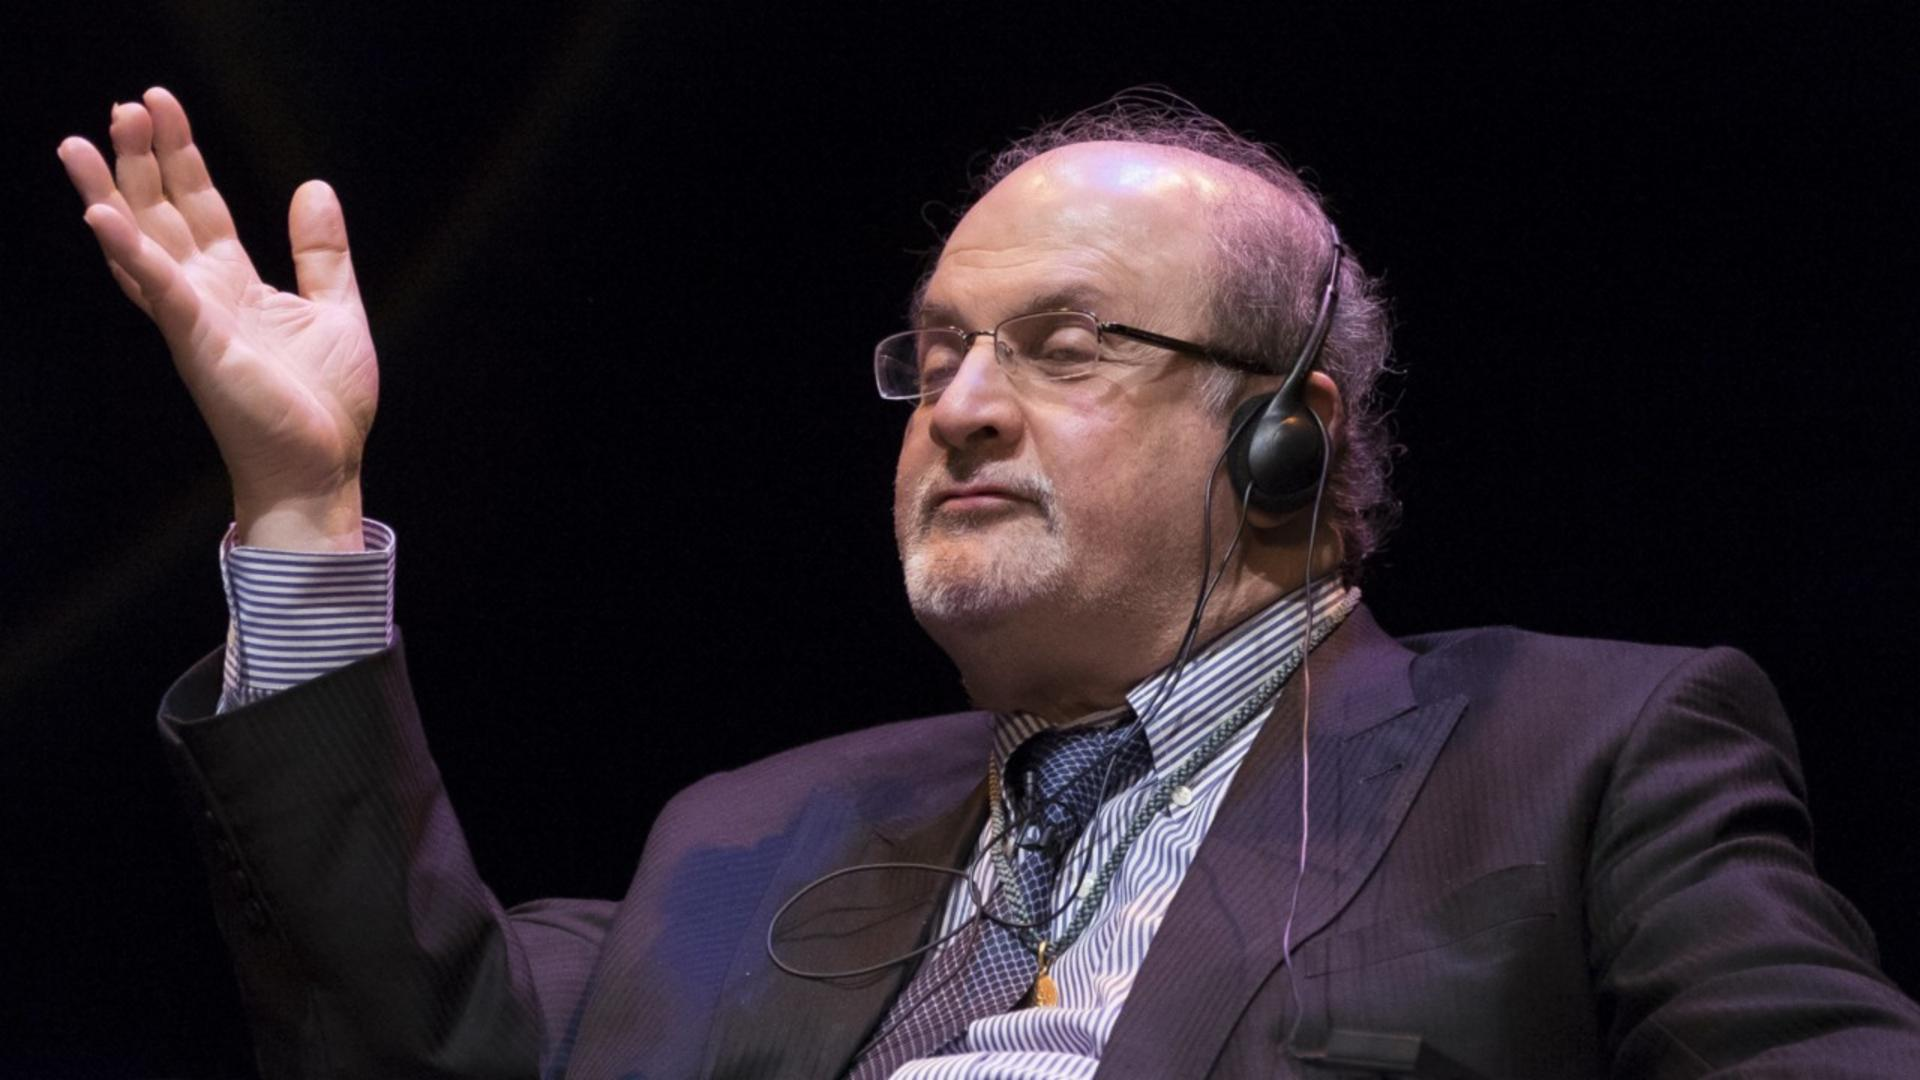 Salman Rushdie, 72, finds love with award-winning 40-year-old poet: report